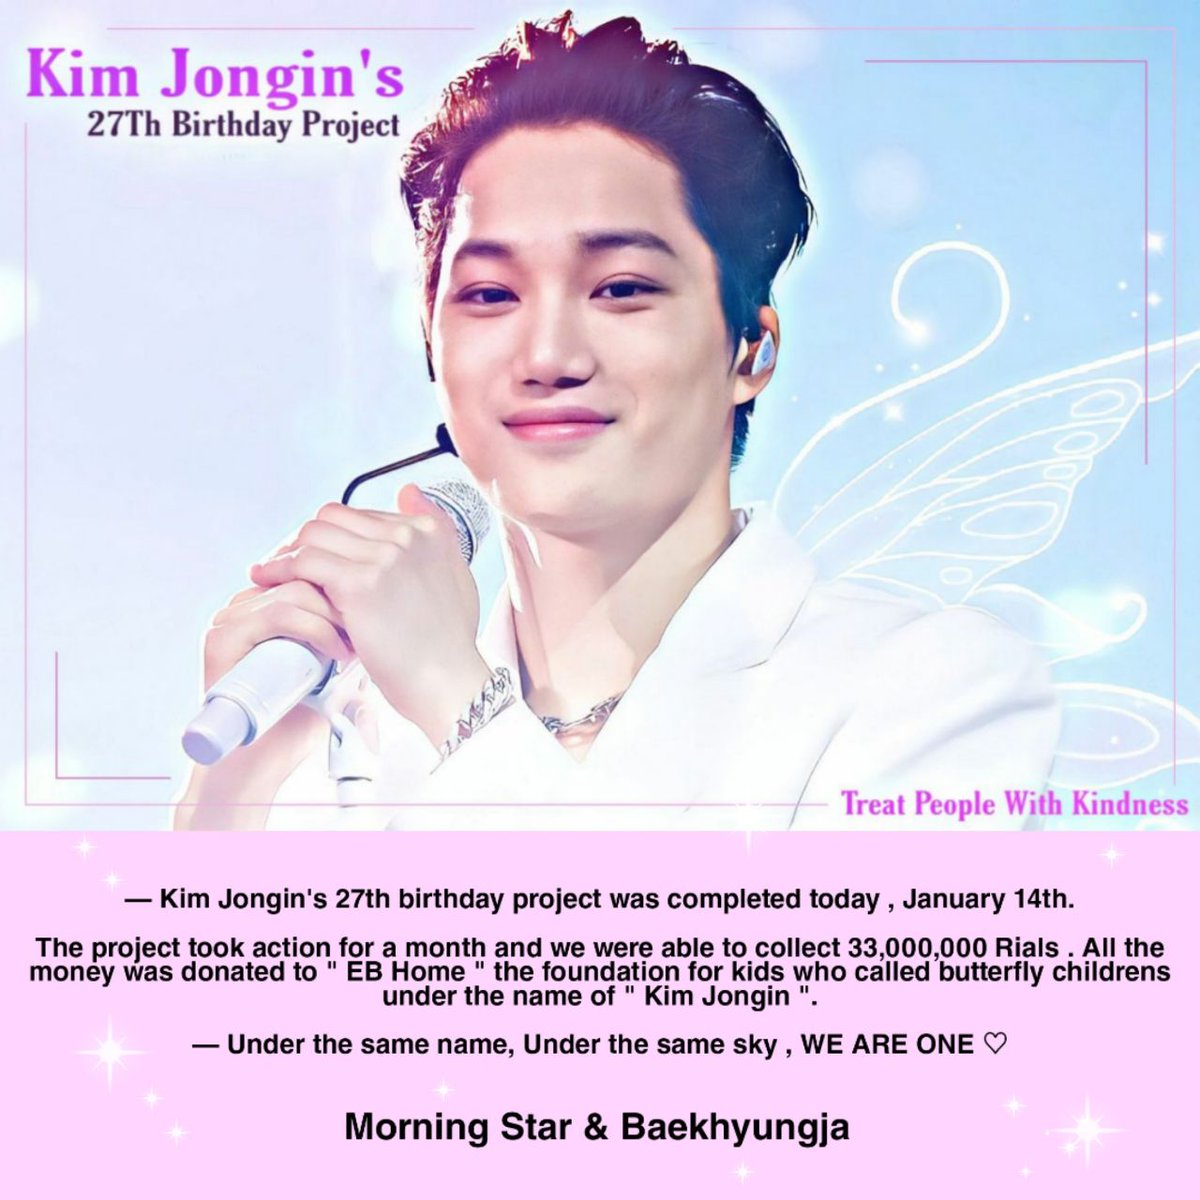 """— Kim Jongin's 27th Birthday 🌤💛 - IR EXOLs' Project 💗  All the money was donated to """" EB Home """" the foundation for kids who called butterfly childrens under the name of """" Kim Jongin """".🦋  — Under the same name, Under the same sky, WE ARE ONE ♡  #ArtistKaiDay #종인아생일축하해"""